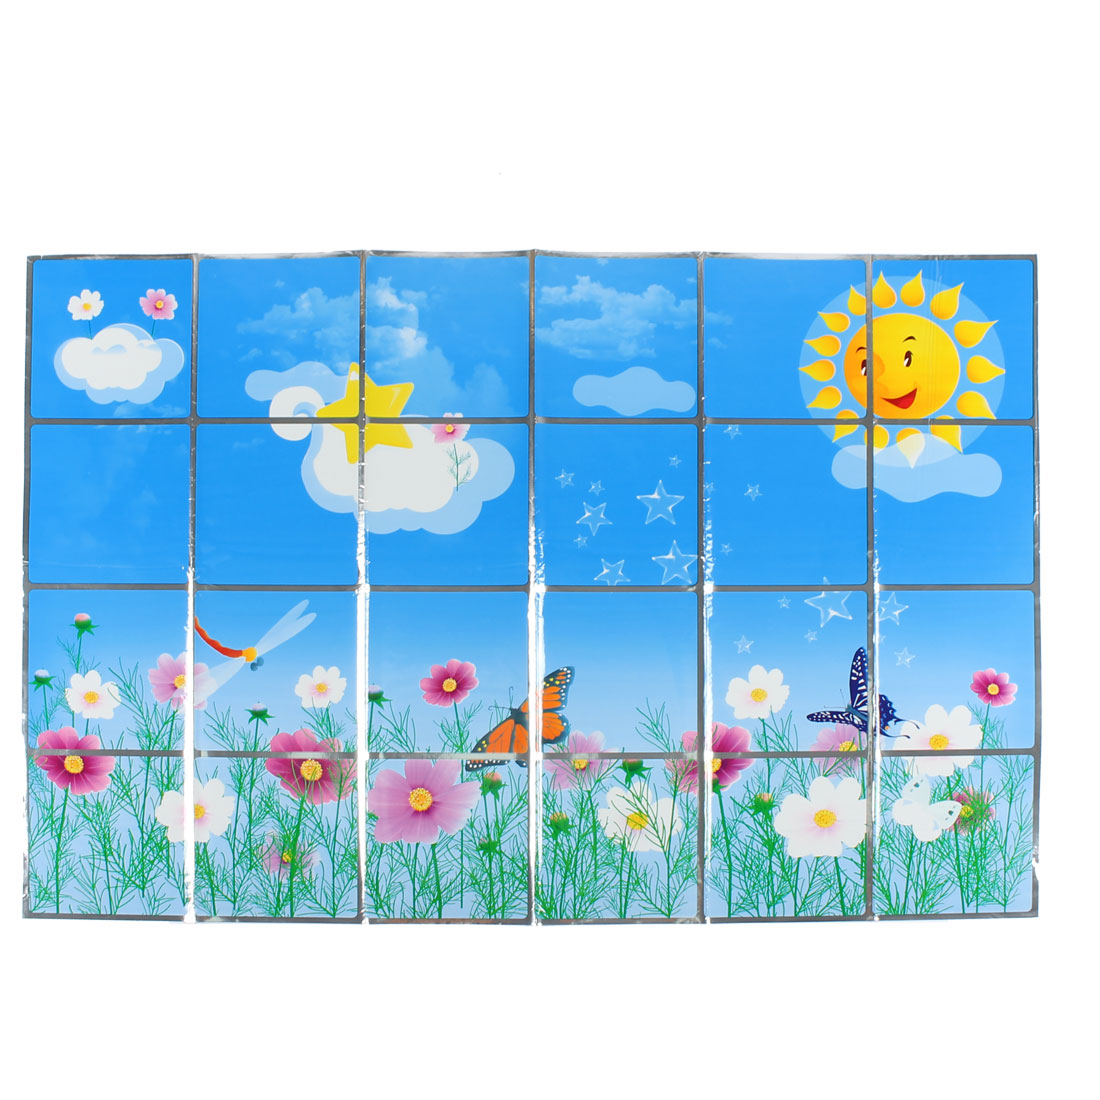 Kitchen Flowers Butterfly Pattern Removable Self-adhesive Oilproof Wall Window Sticker 90 x 60cm